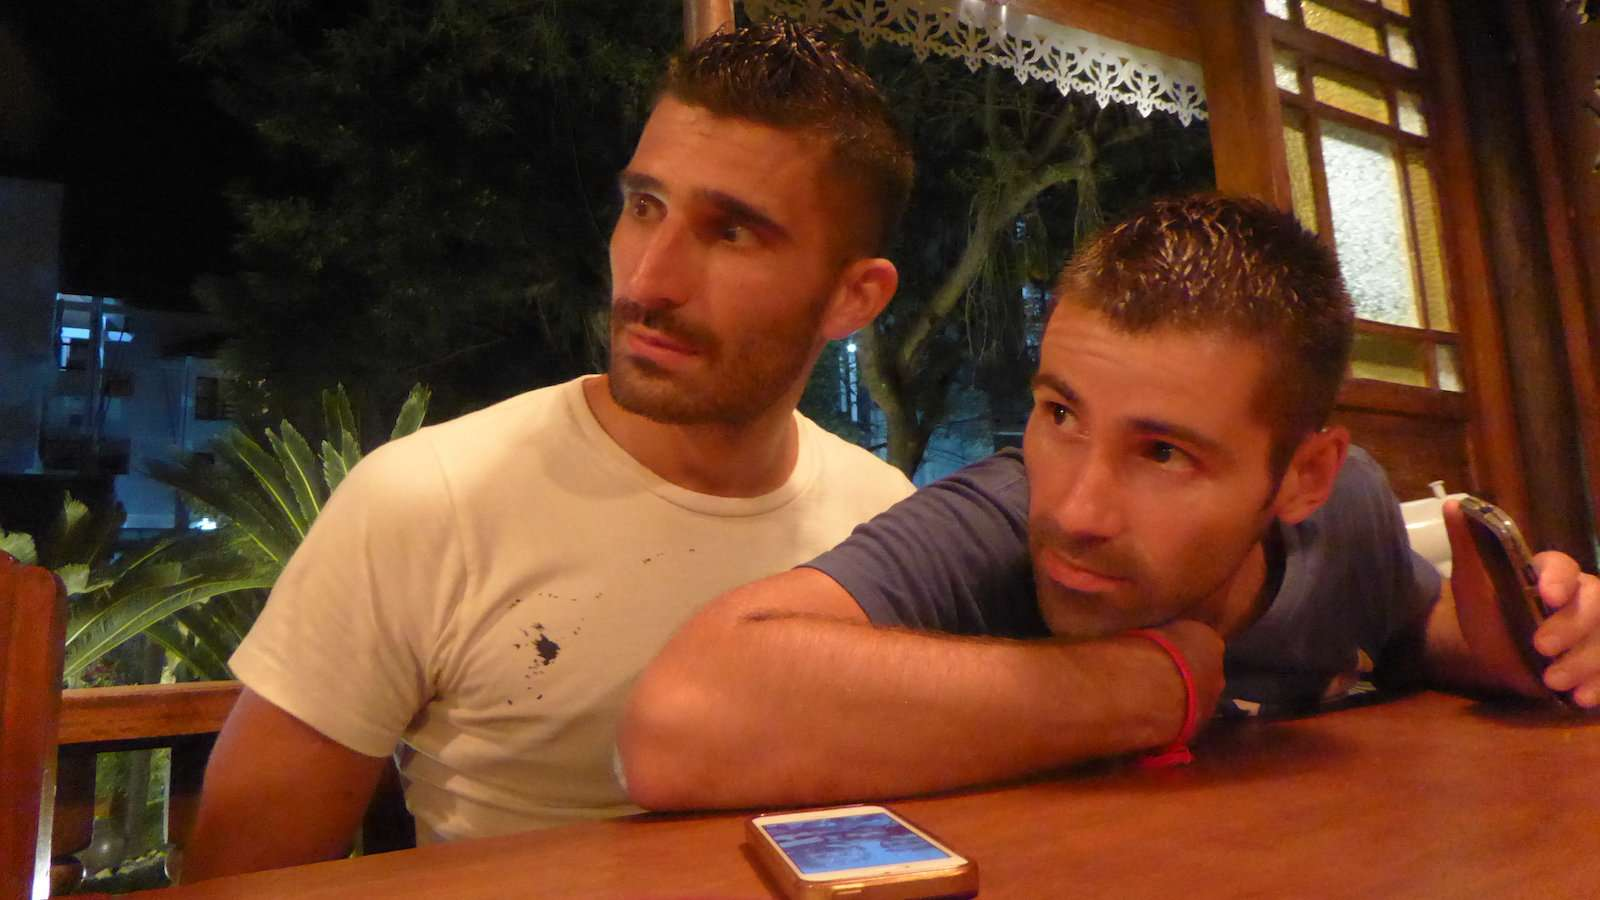 Nyc chat free gay line New York